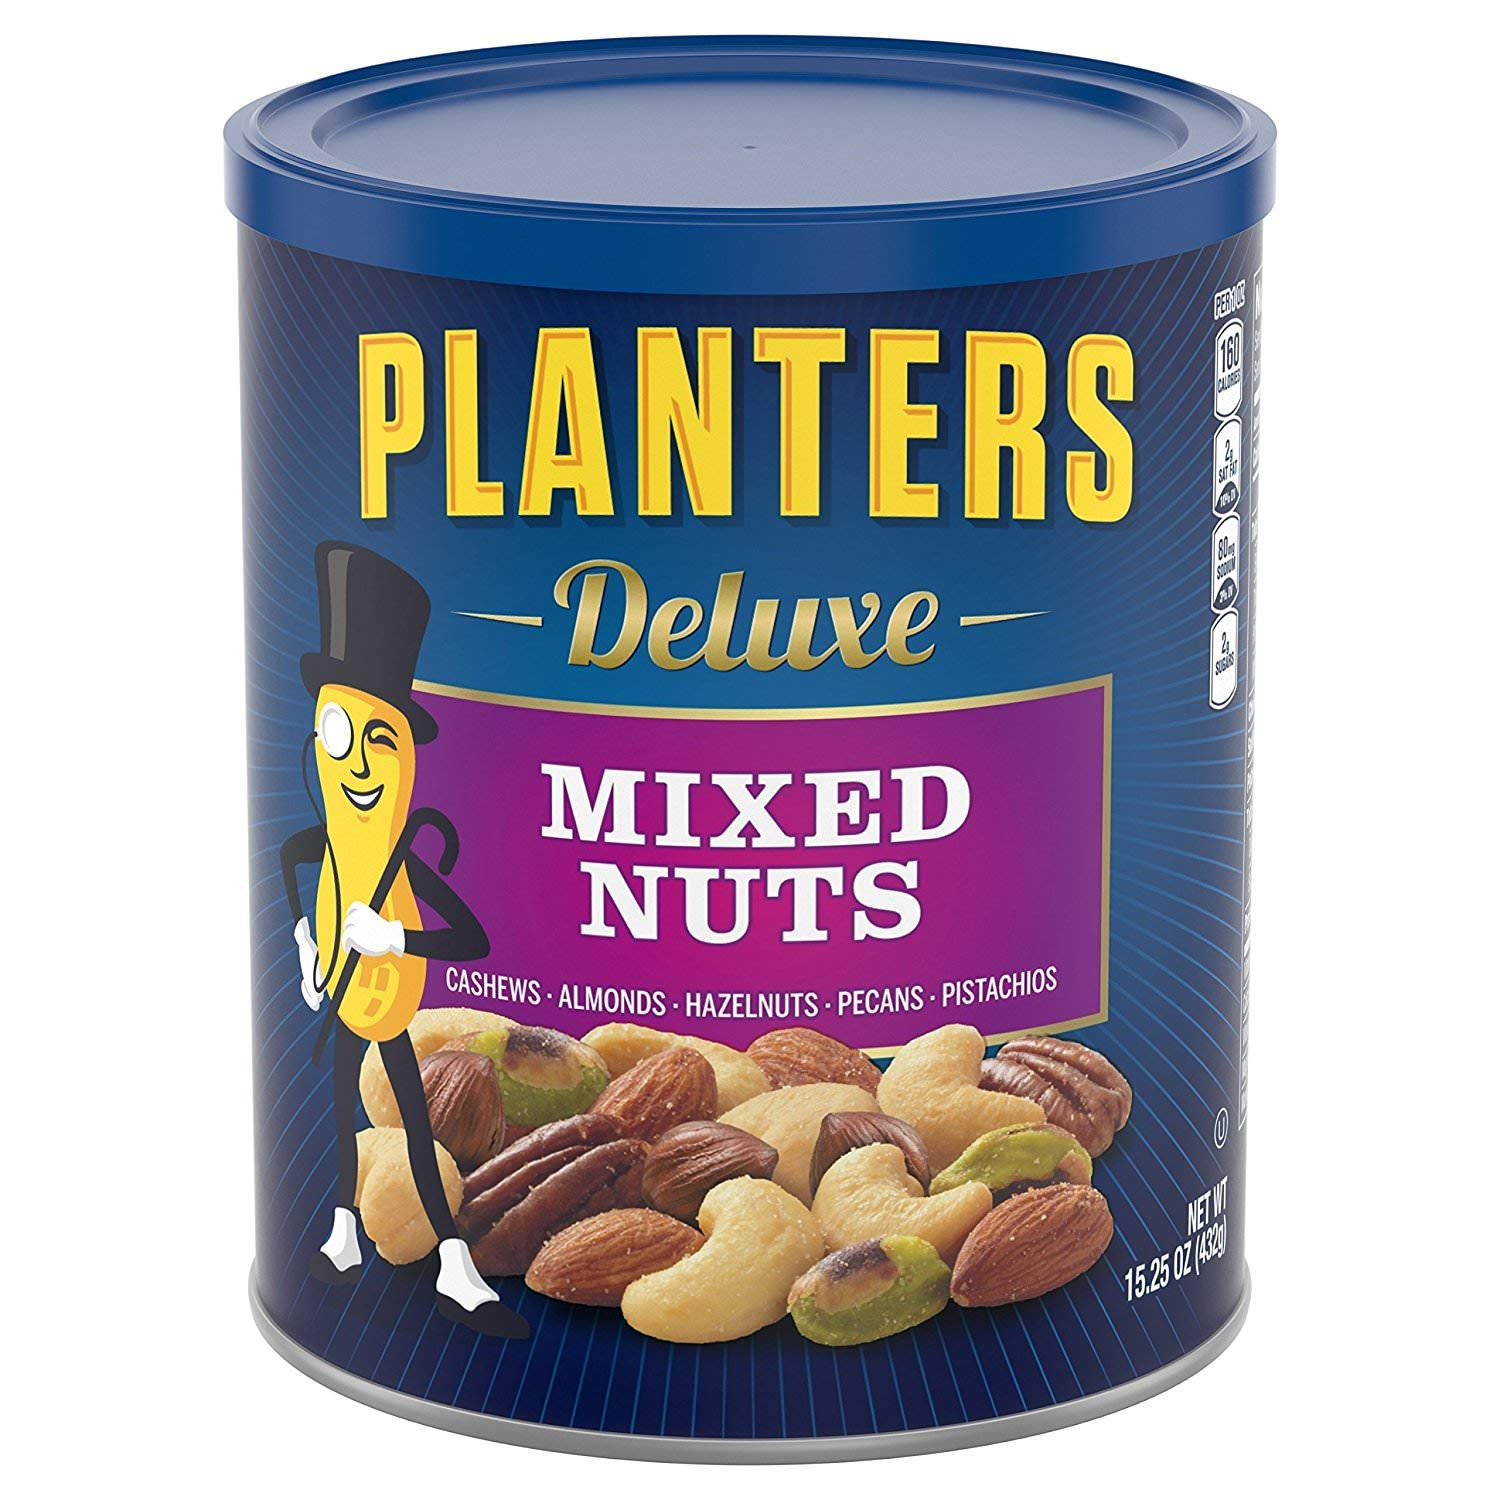 Planters Deluxe Mixed Nuts, 3 Tubs (15.25 Ounce)